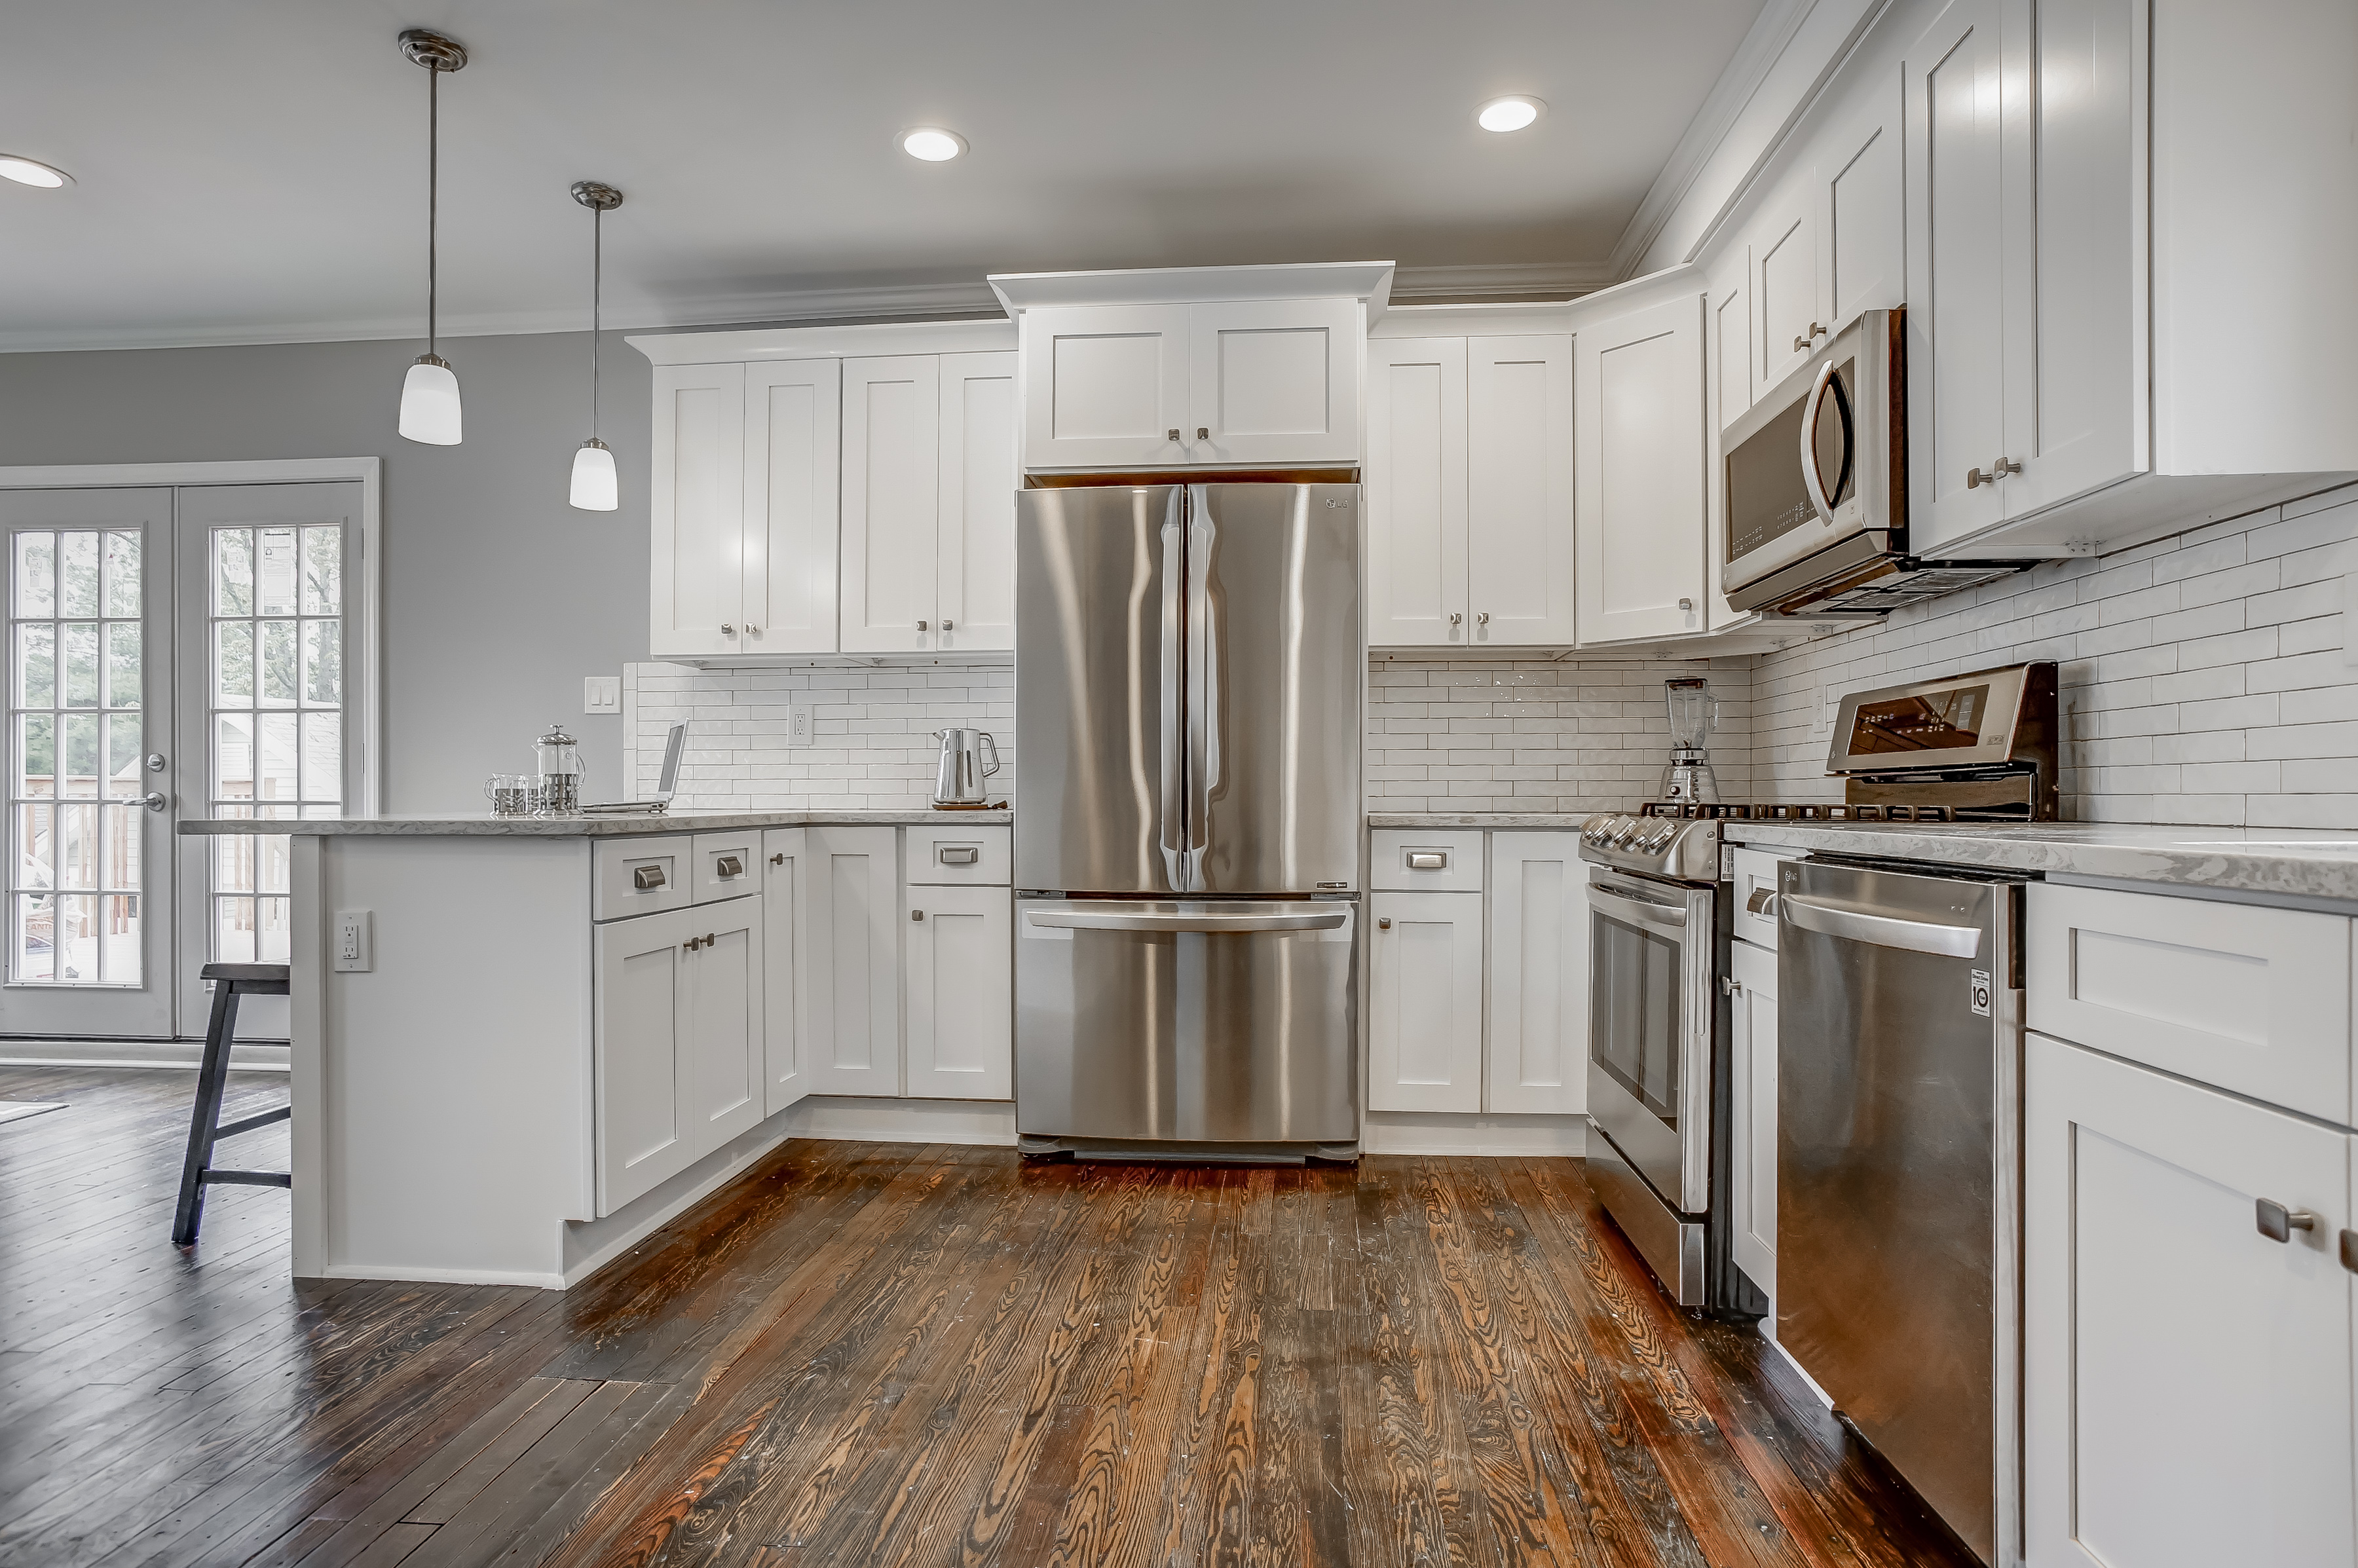 Kitchen Cabinets Verona Nj - If you re thinking about buying selling or renting in verona or surrounding towns choose a local realtor and local real estate expert from the 1 real